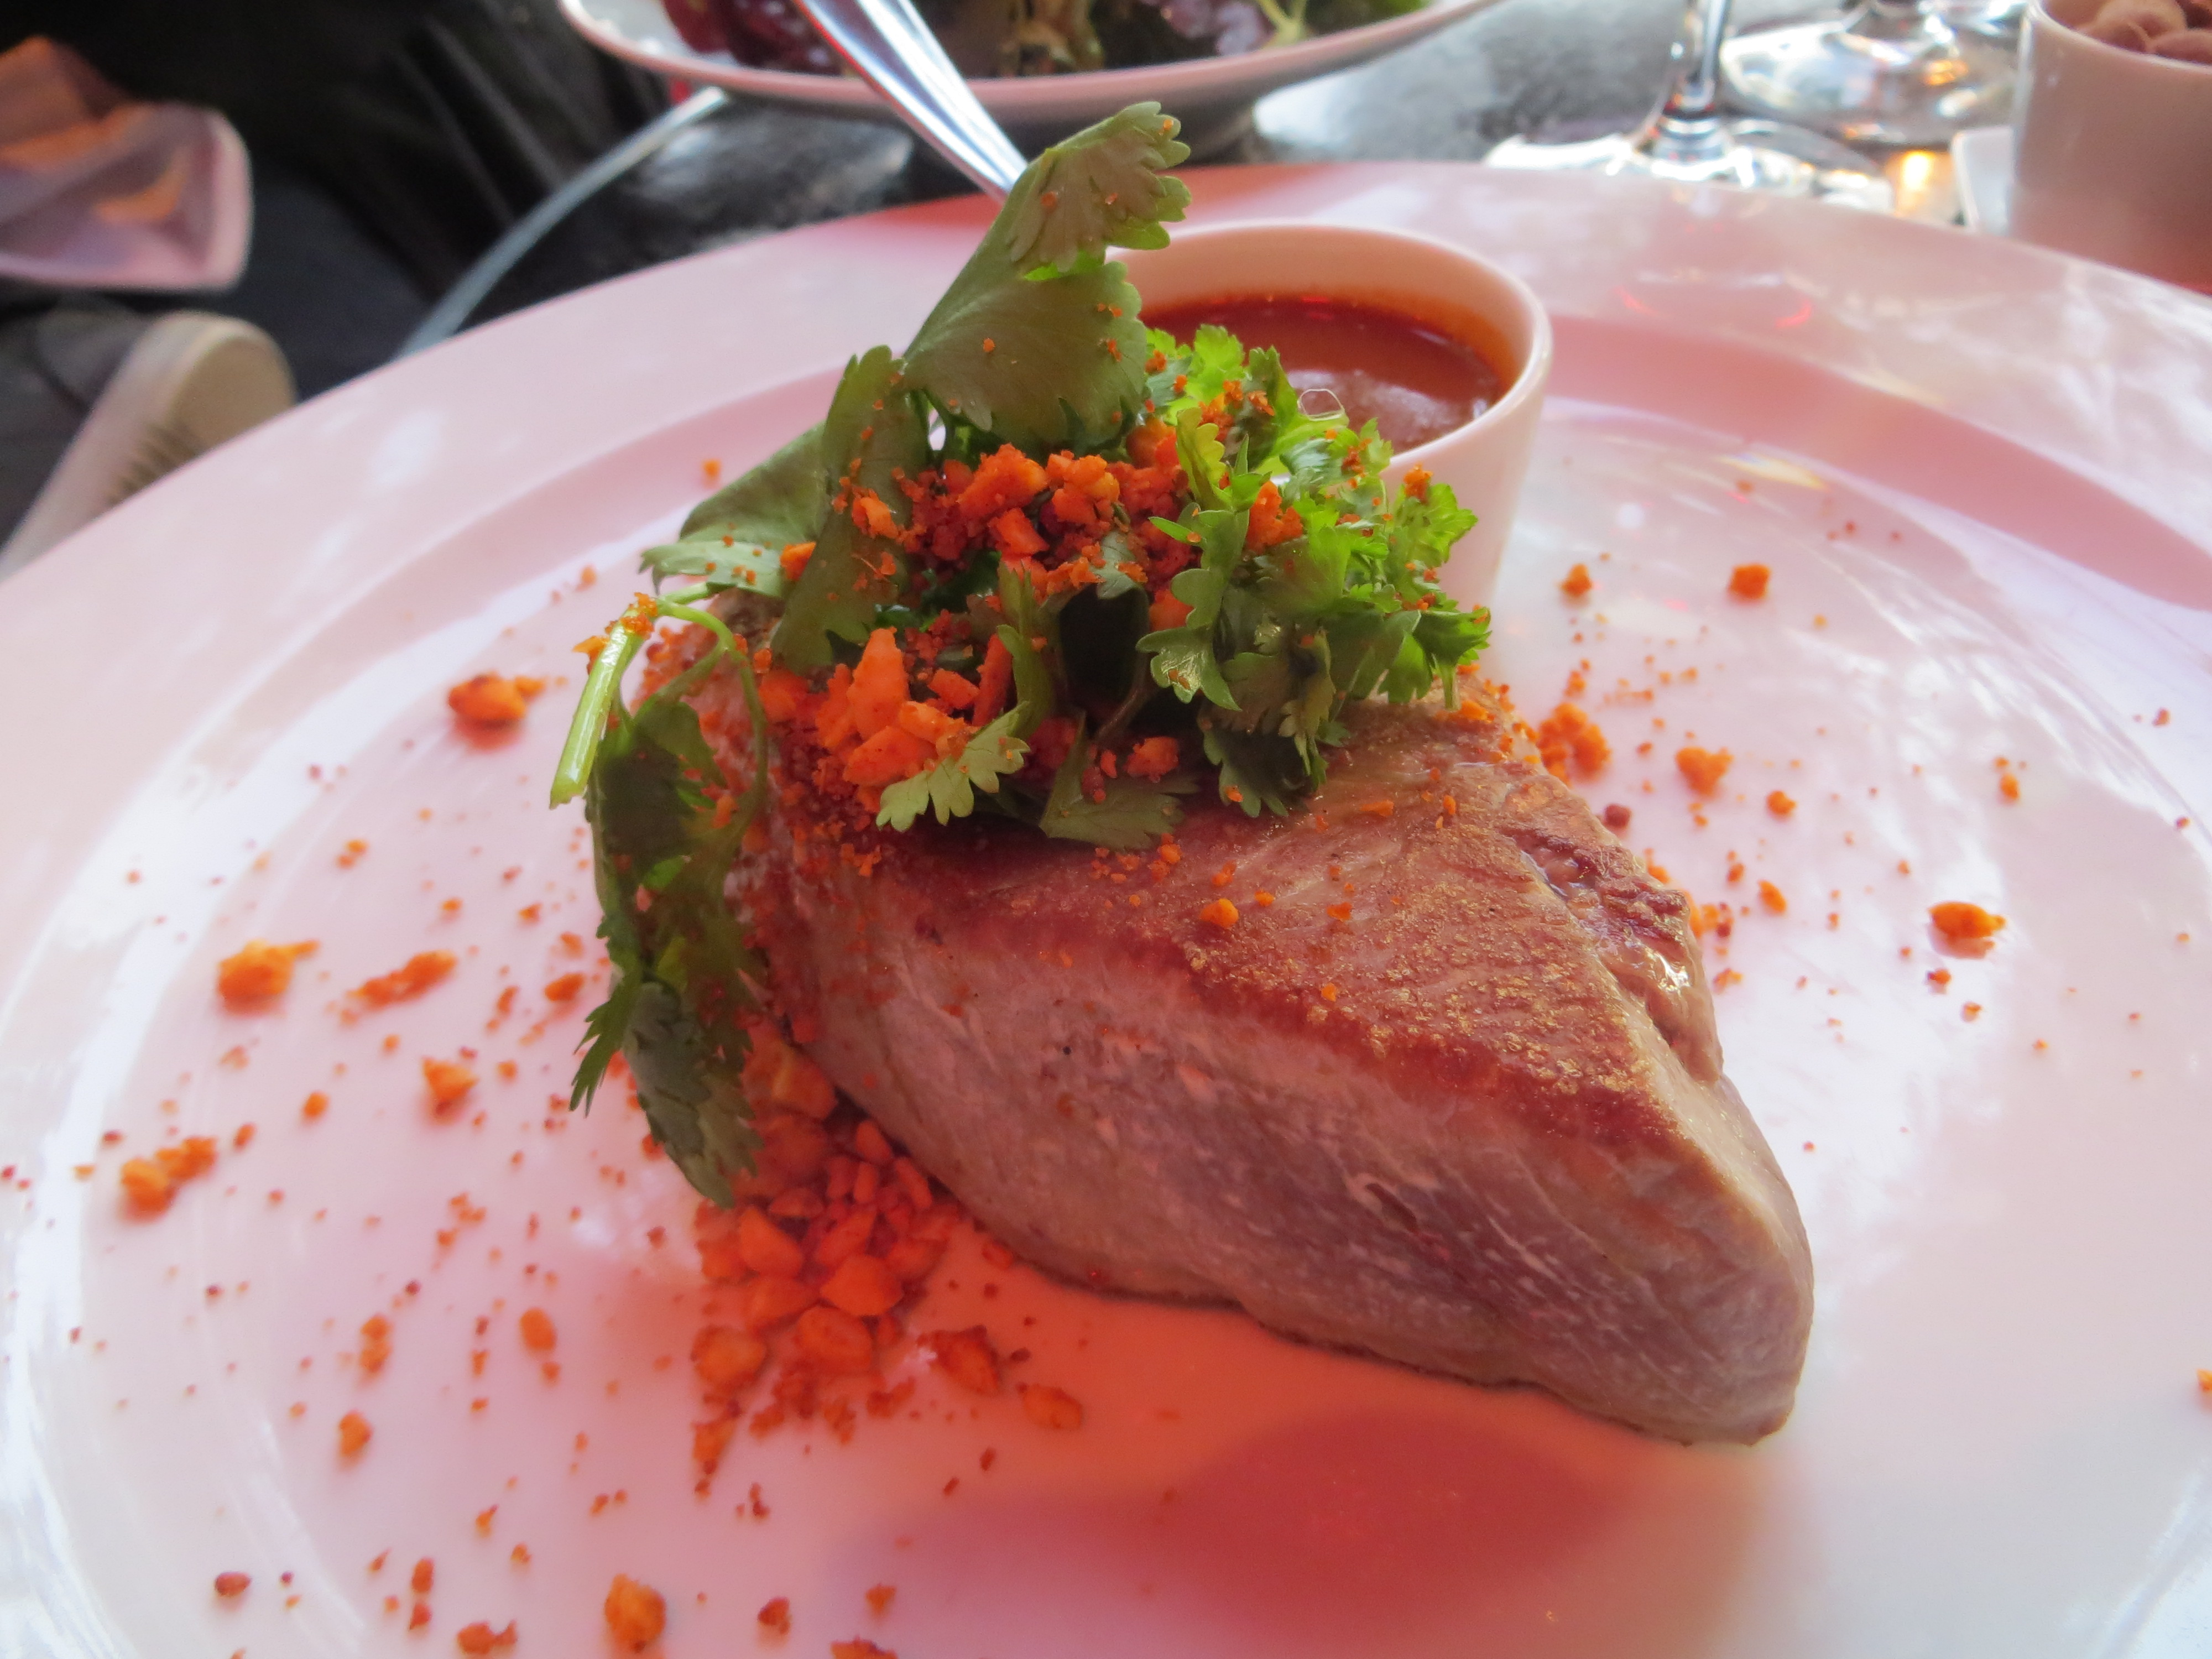 Tuna at Le Coq, A costes restaurant at Trocadero in Paris